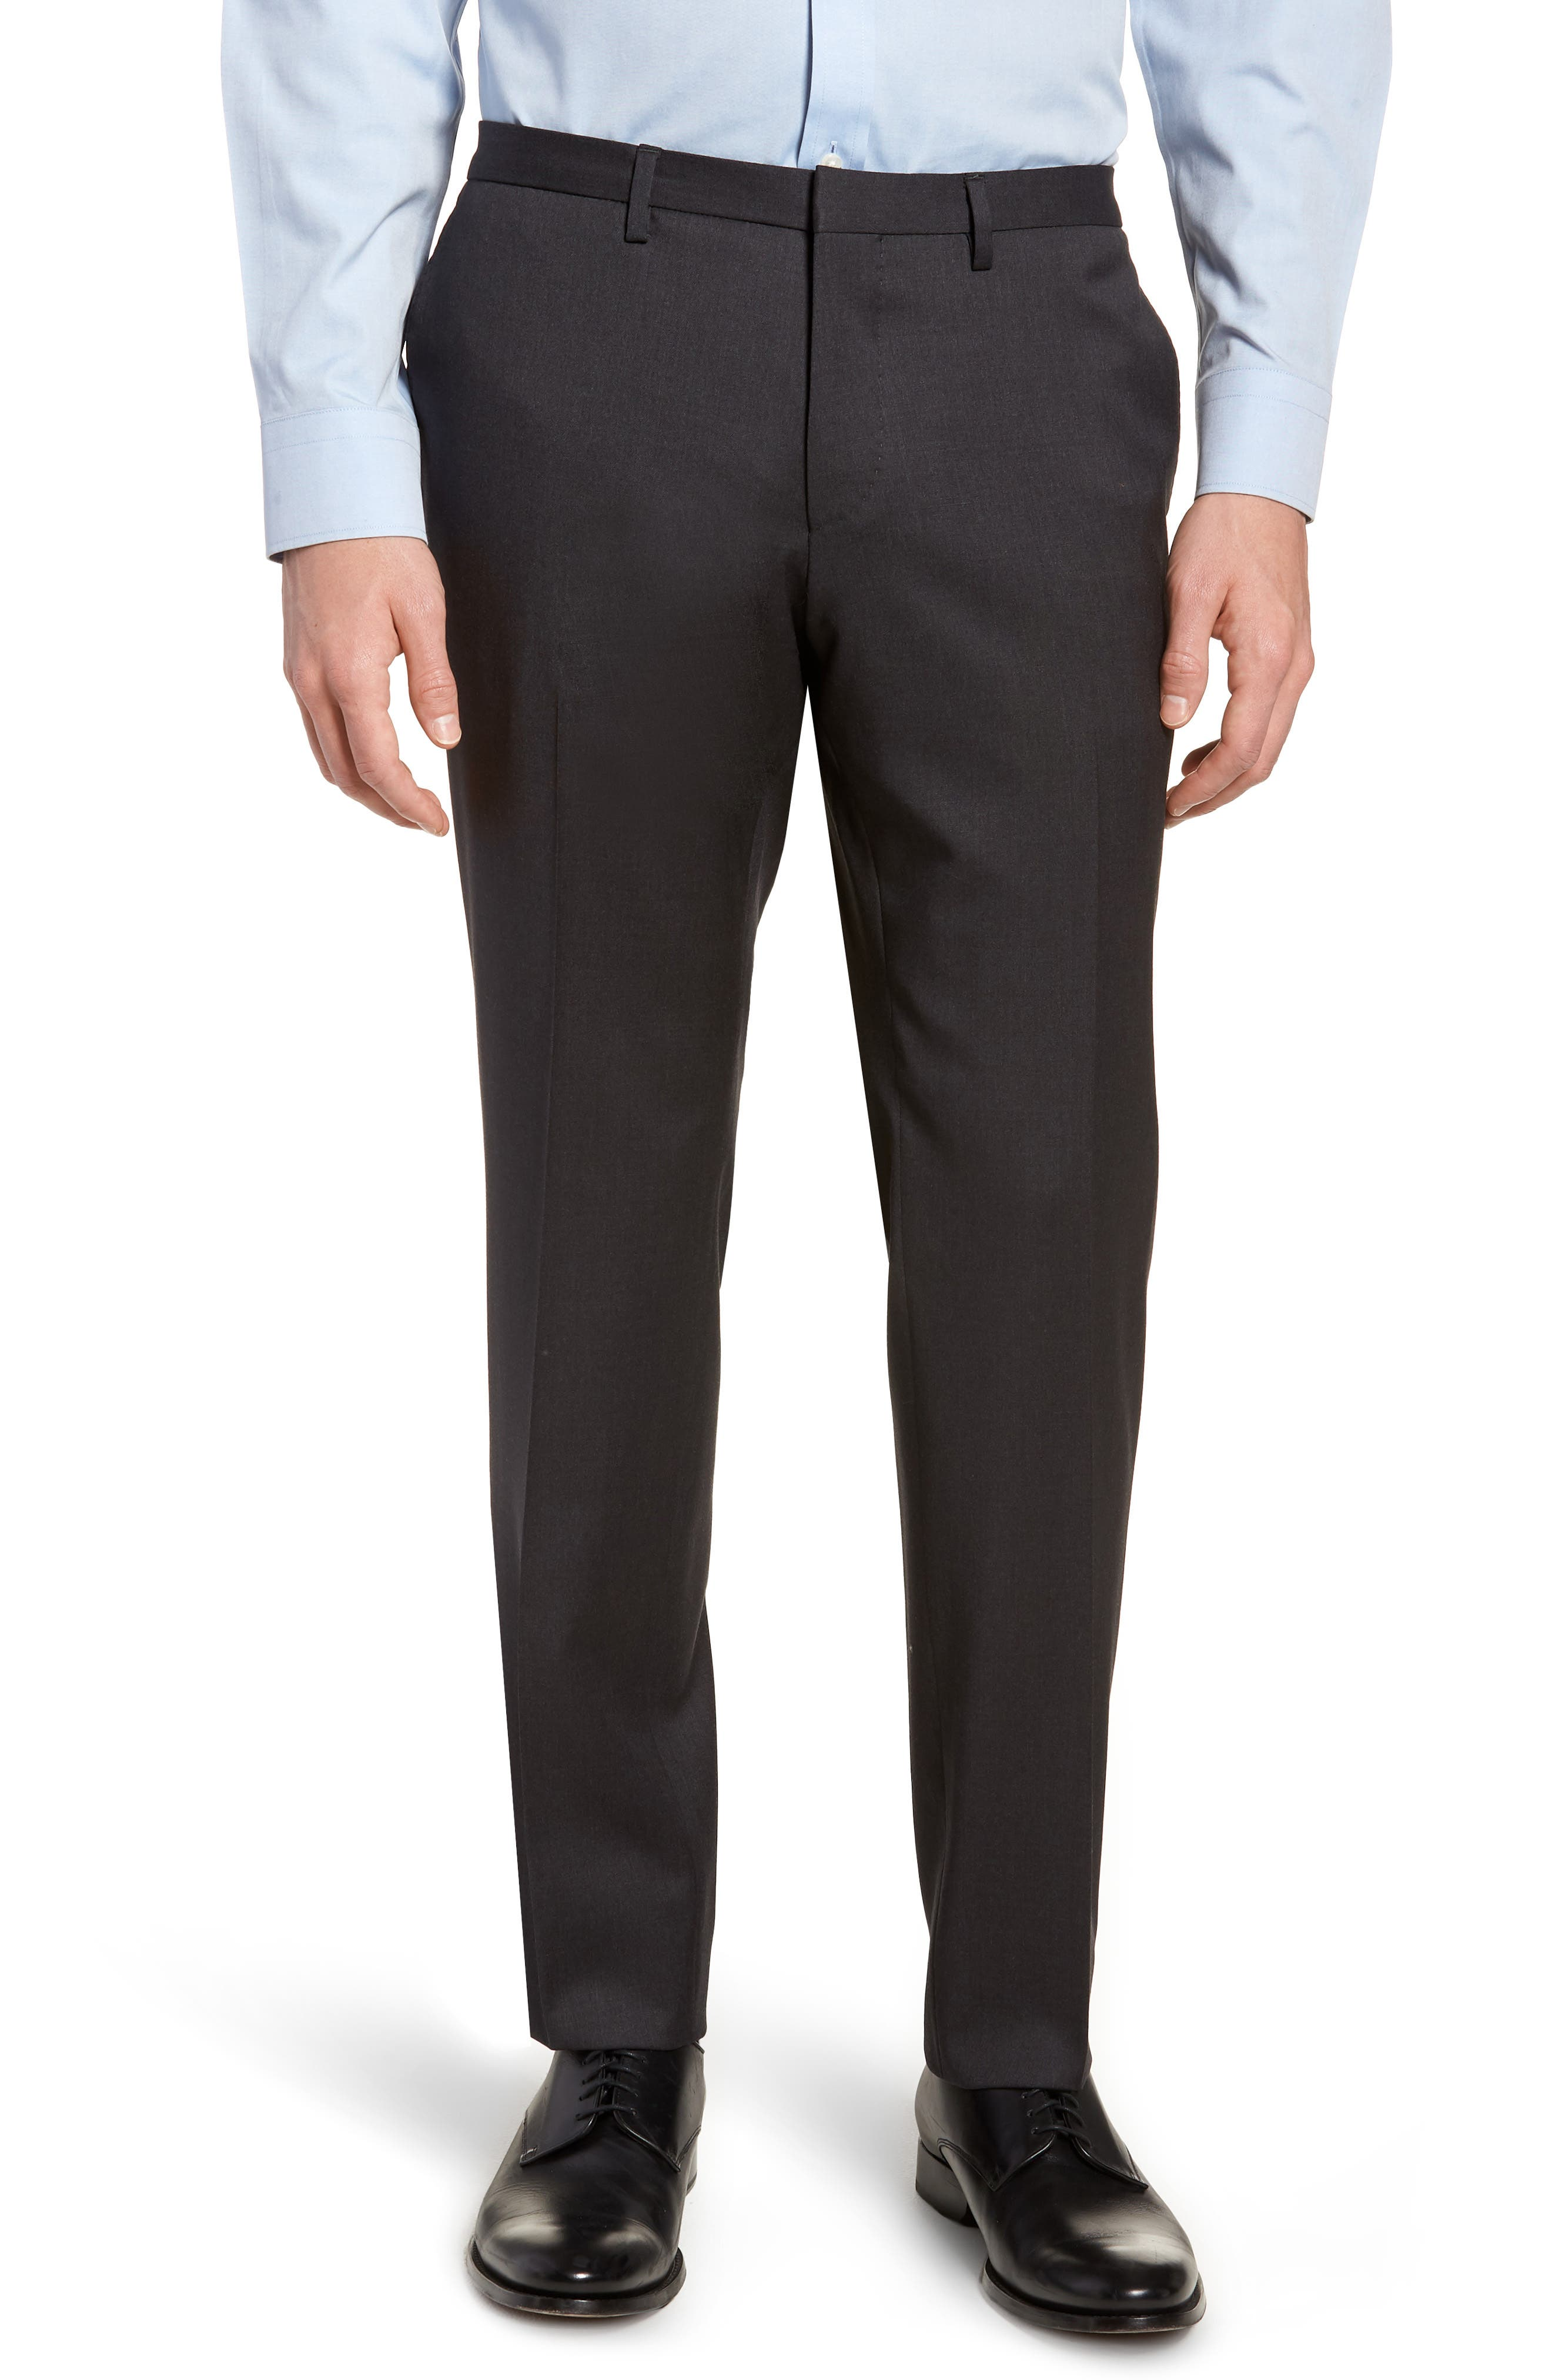 'Ryan/Win' Extra Trim Fit Solid Wool Suit,                             Alternate thumbnail 8, color,                             021